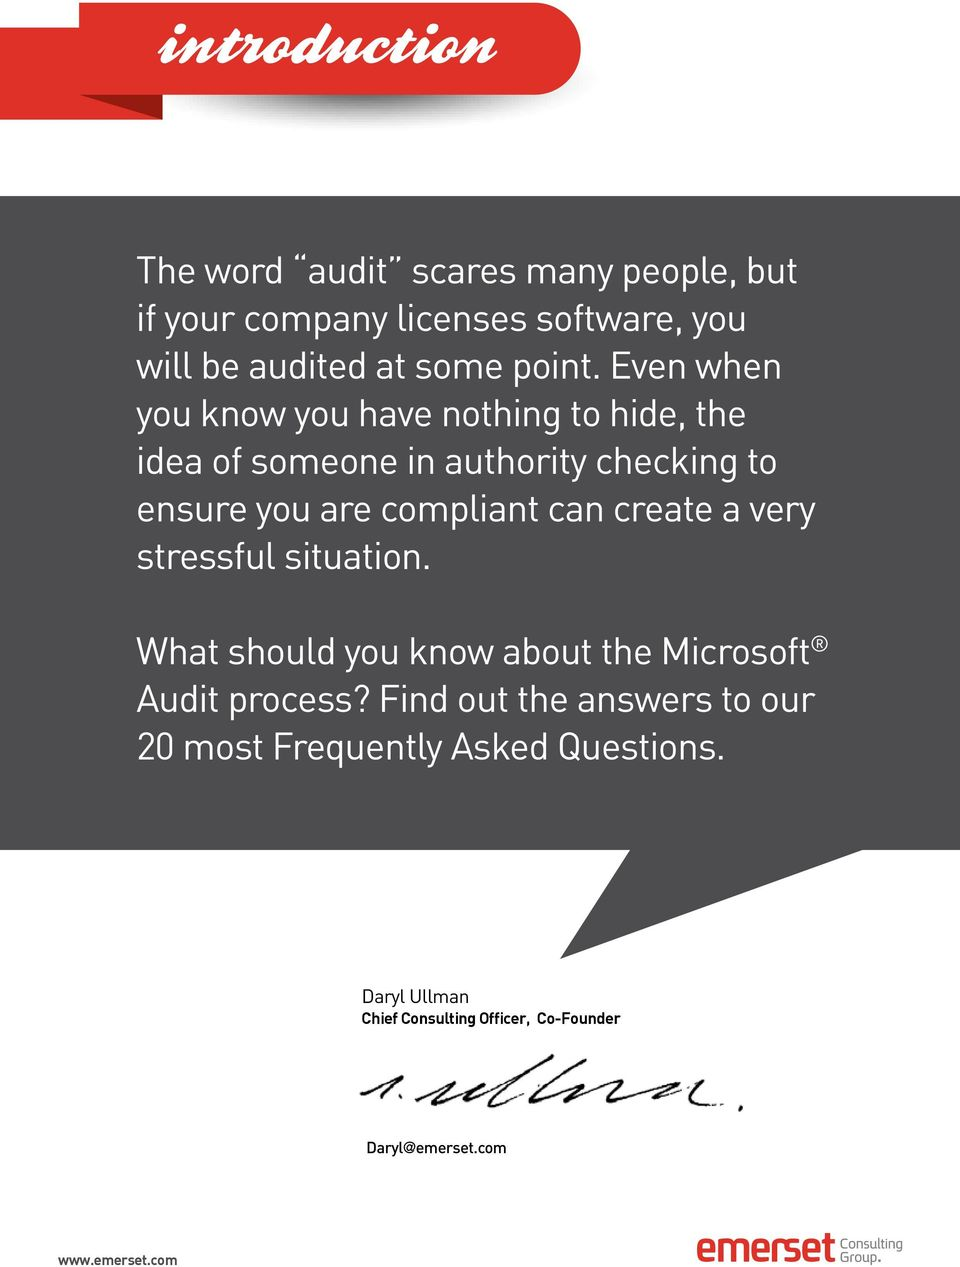 compliant can create a very stressful situation. What should you know about the Microsoft Audit process?